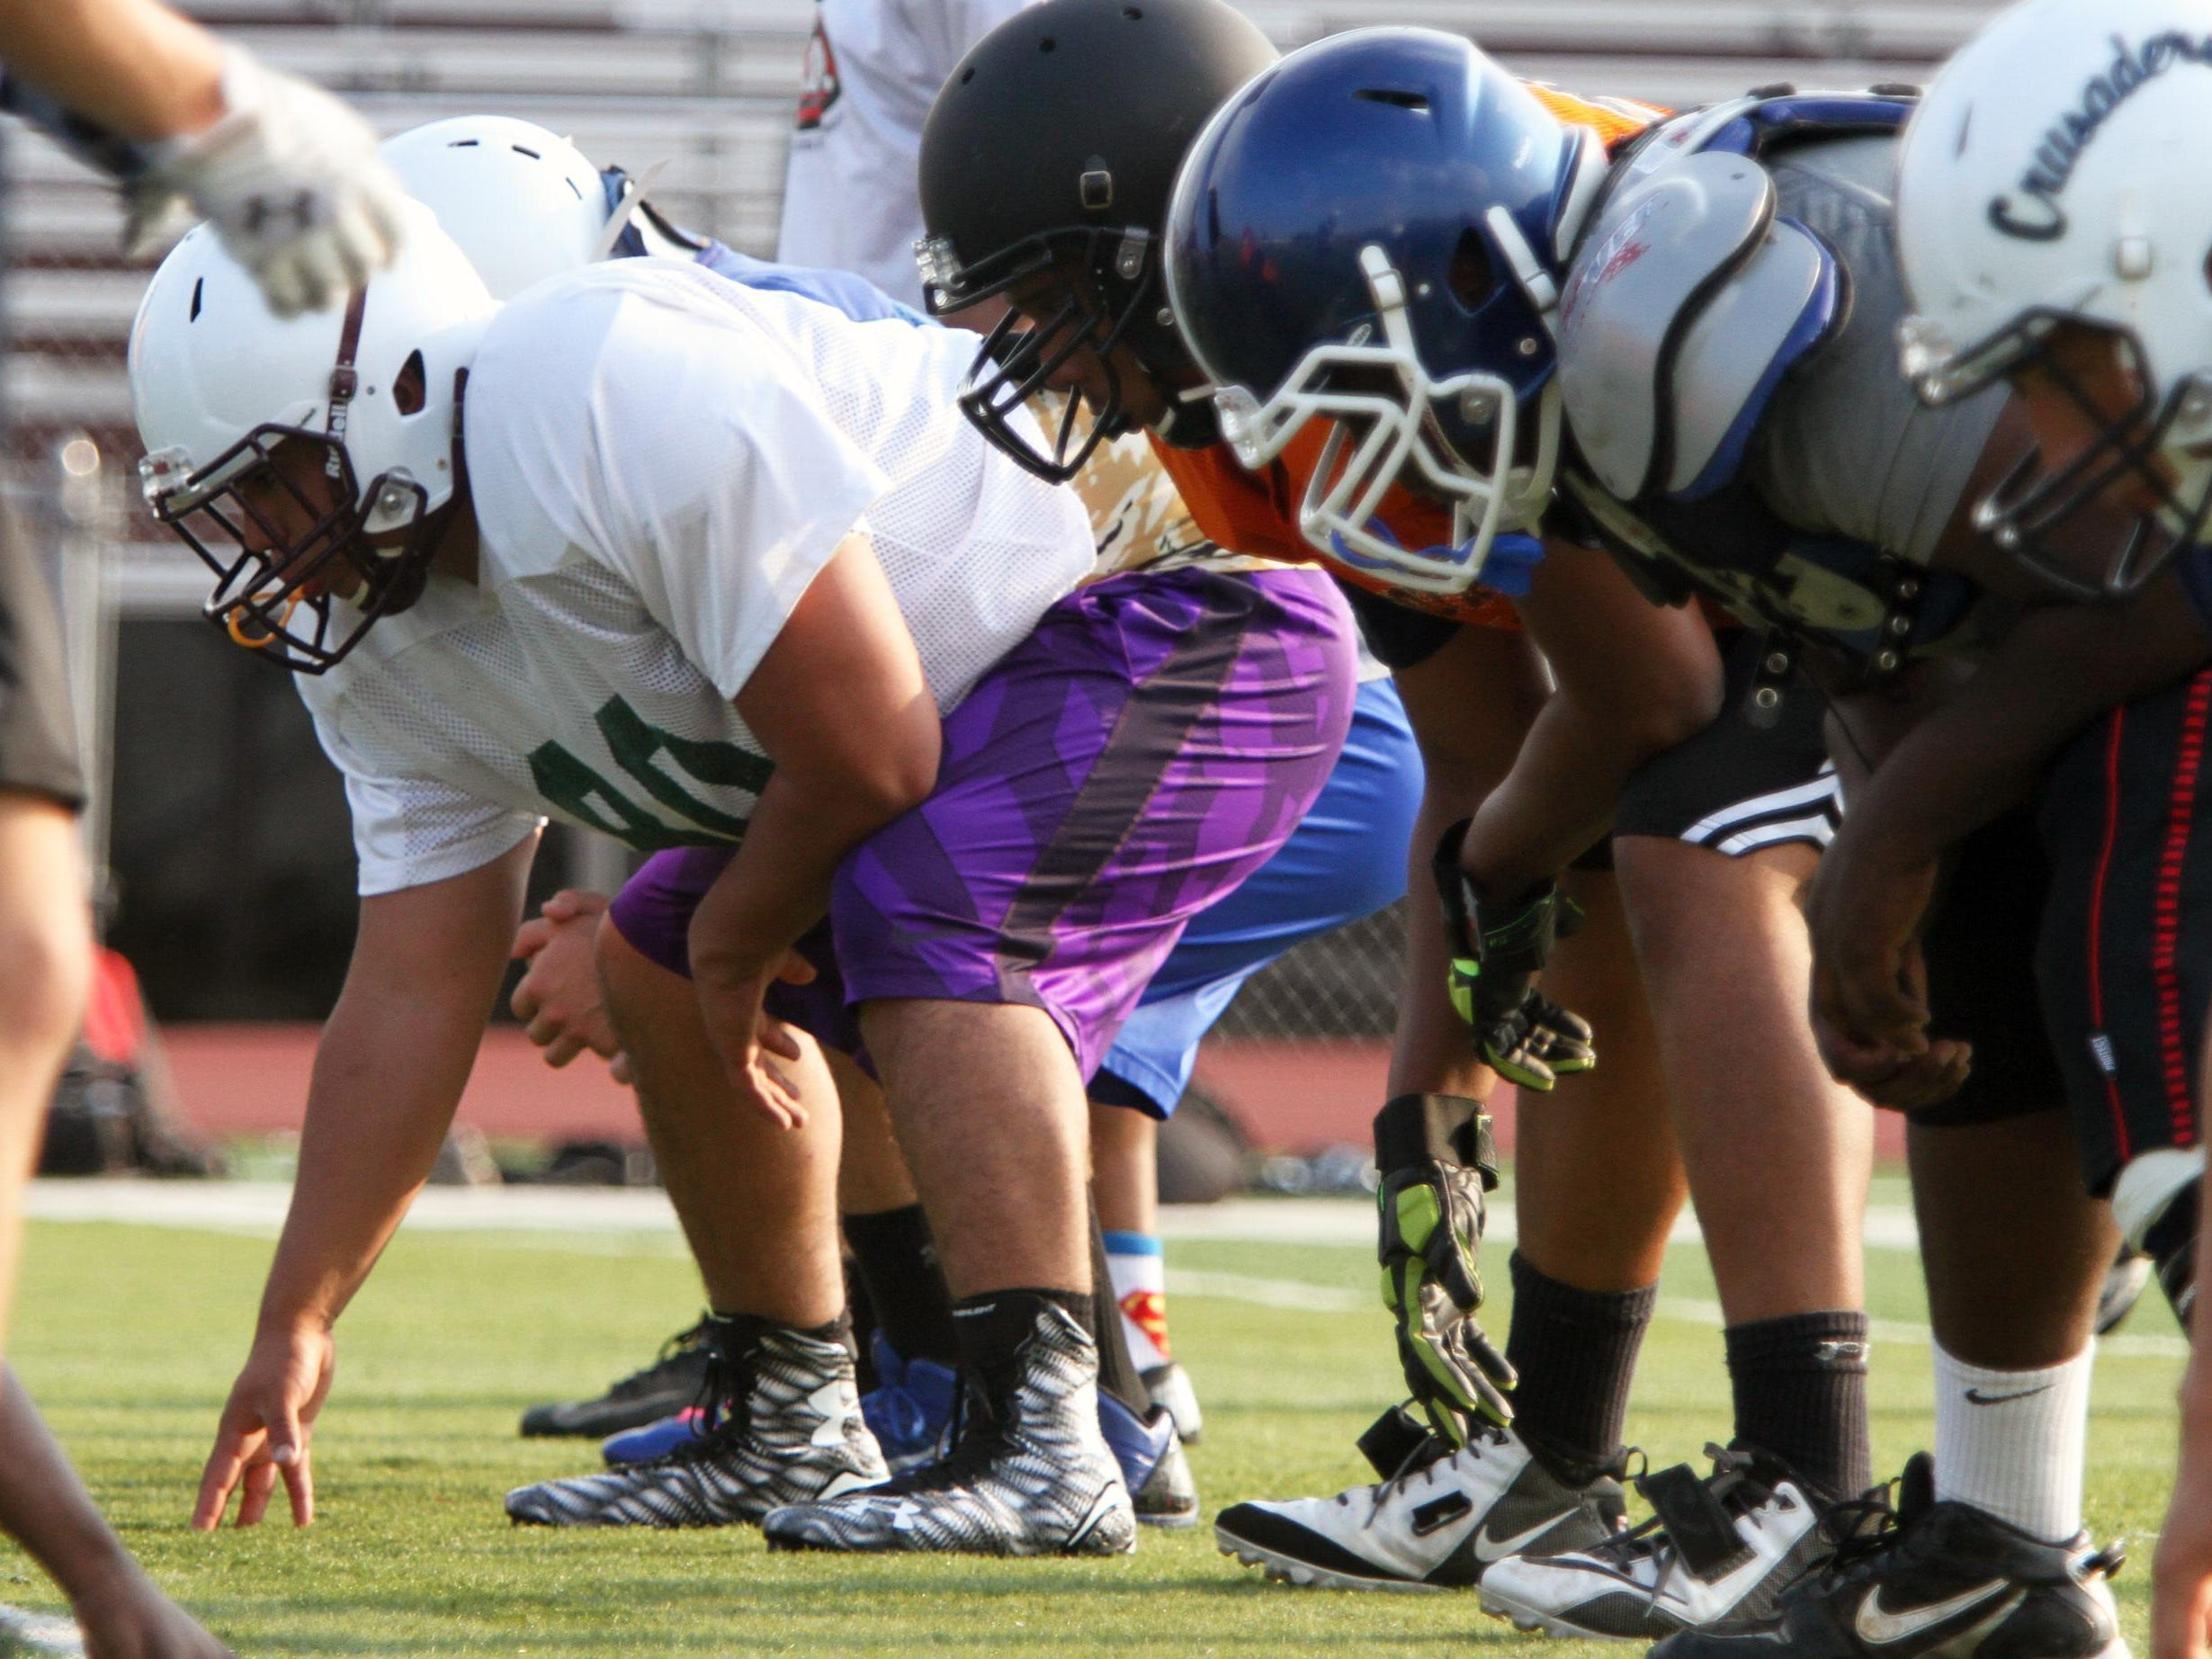 Union County All-Star football players as they prepare for MyCentralJersey.com Snapple Bowl XXII at Union High School on Tuesday July 7,2015. Here New Providence's Pat Morris (left) works during a defensive drill.